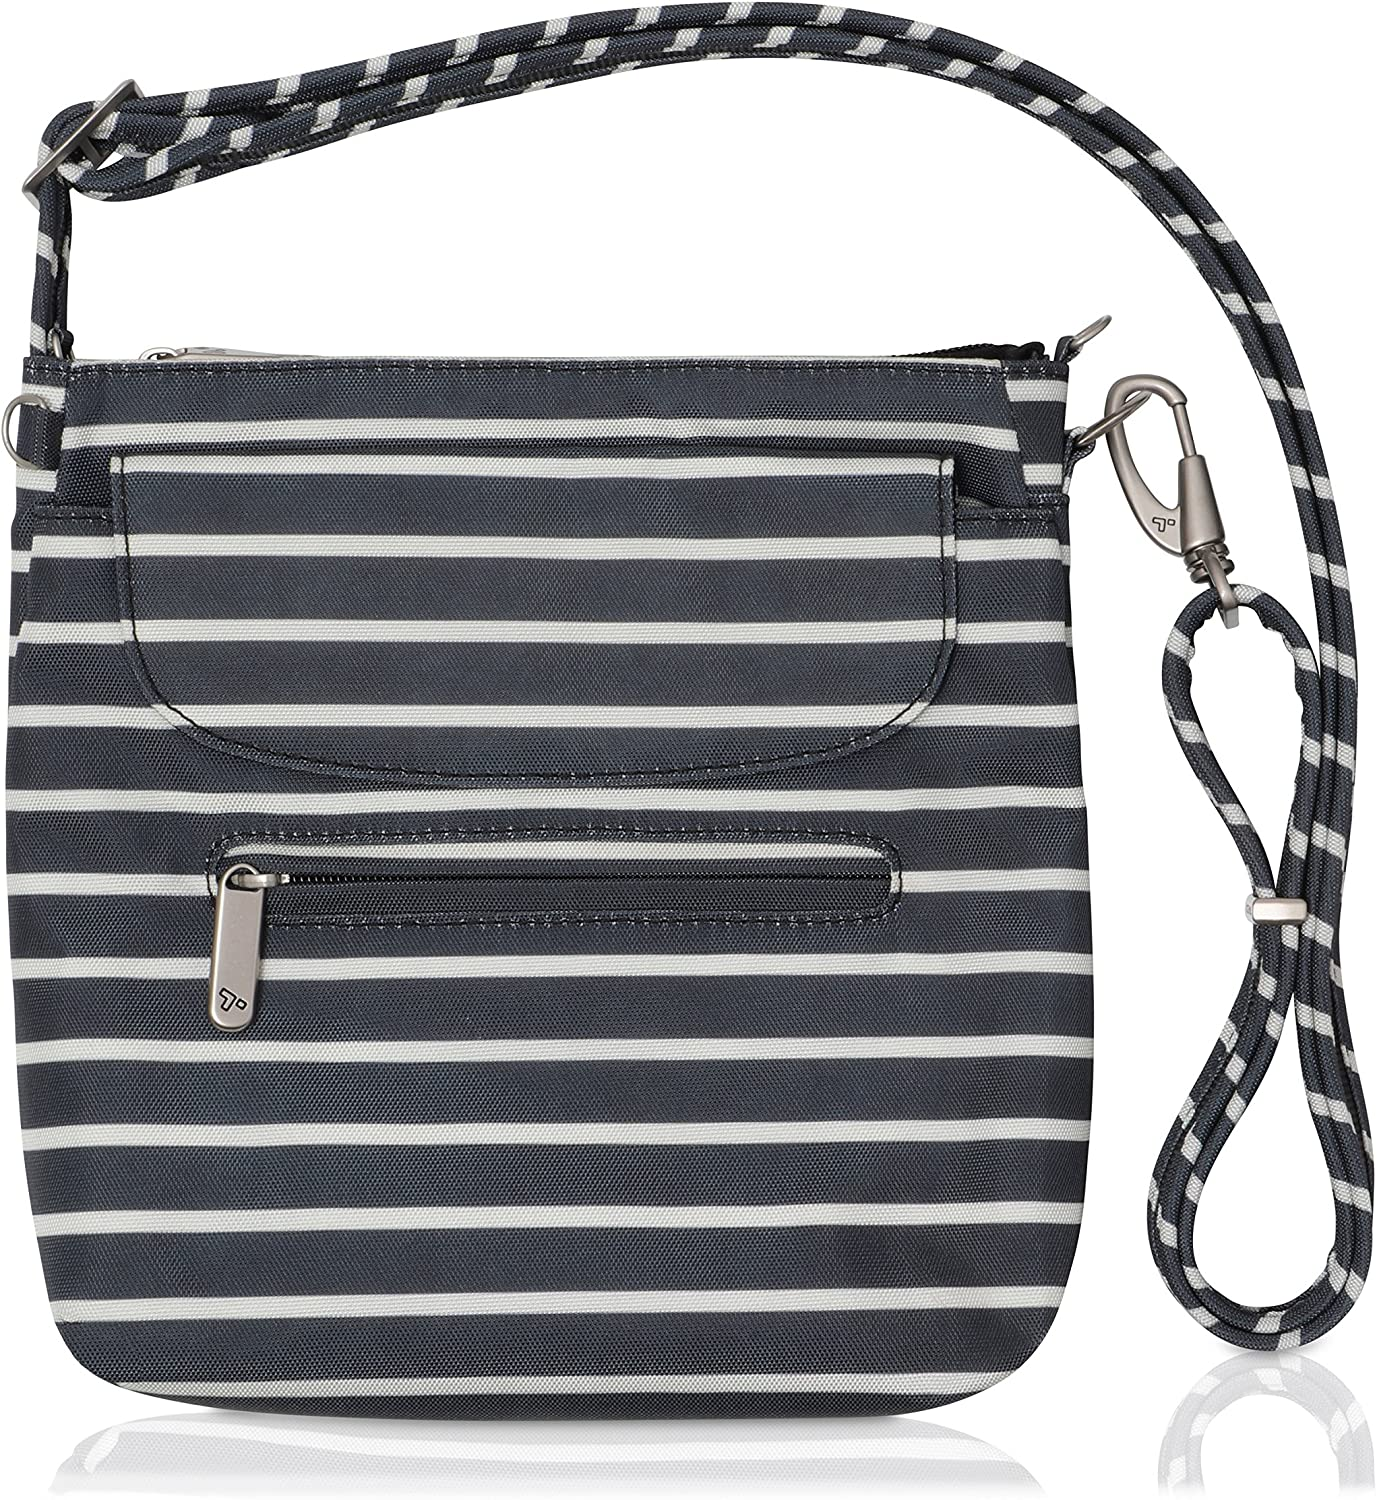 Travelon Anti-Theft Classic Mini Shoulder Bag (Black w/White Stripe - Exclusive Color)